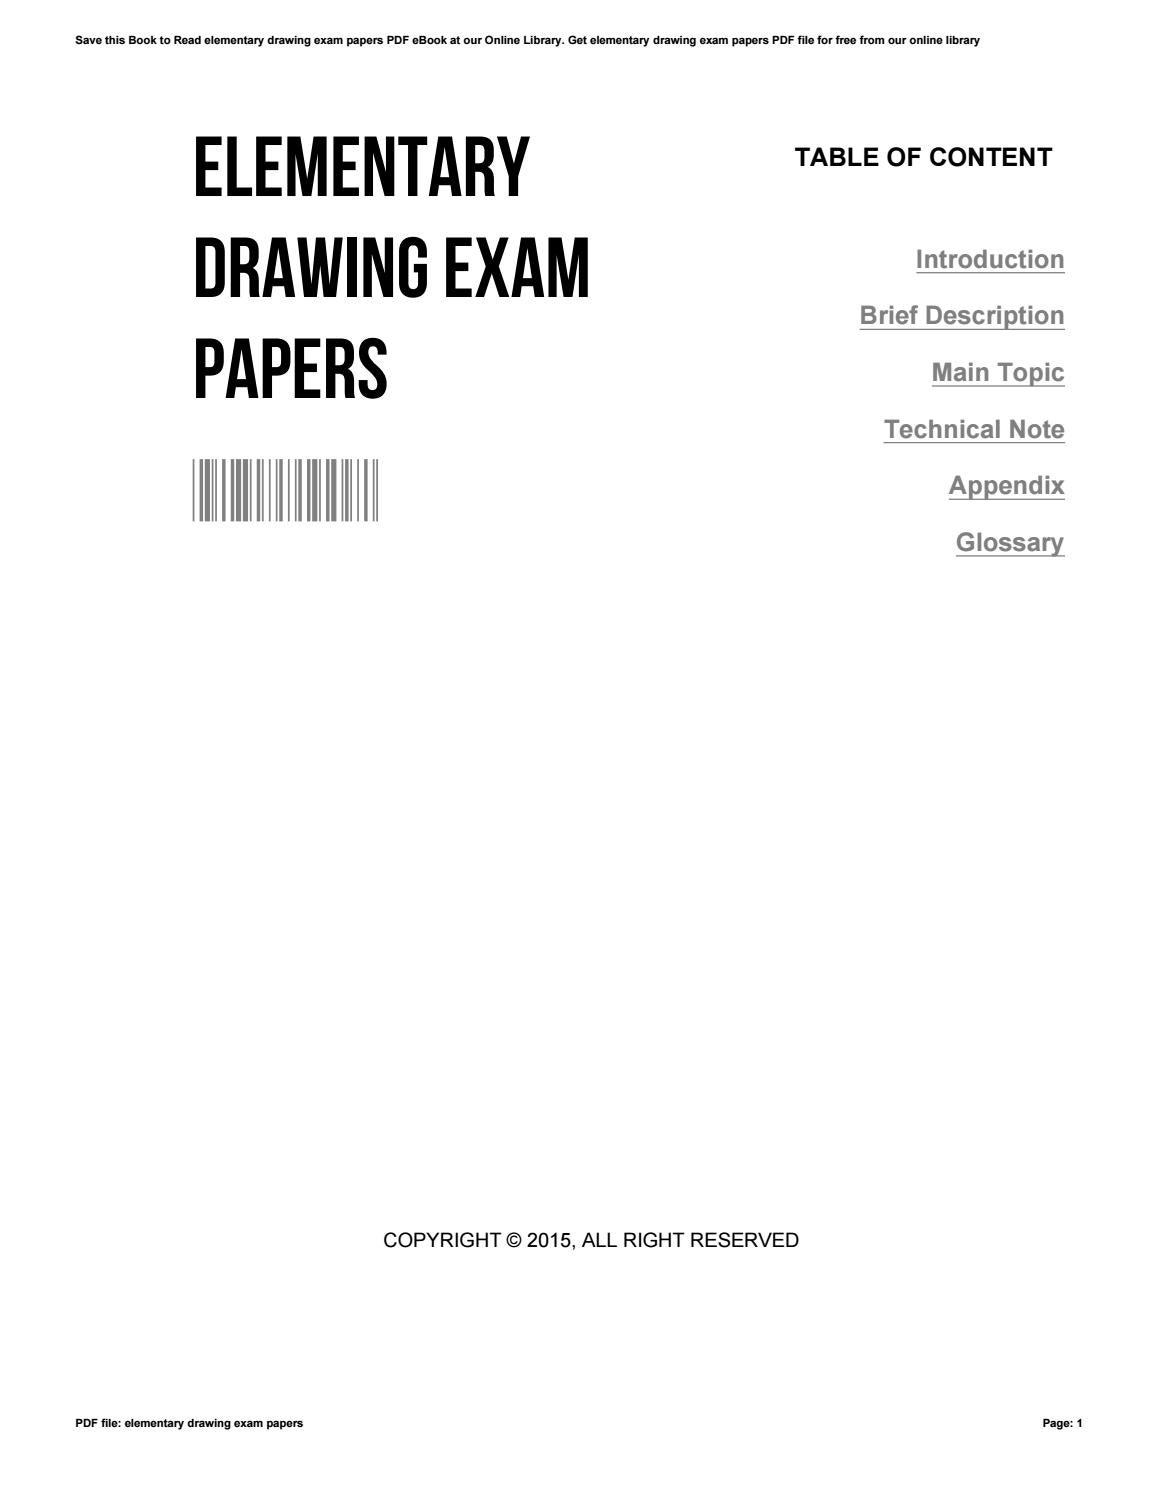 Elementary drawing exam papers by WilliamRayford2919 - issuu